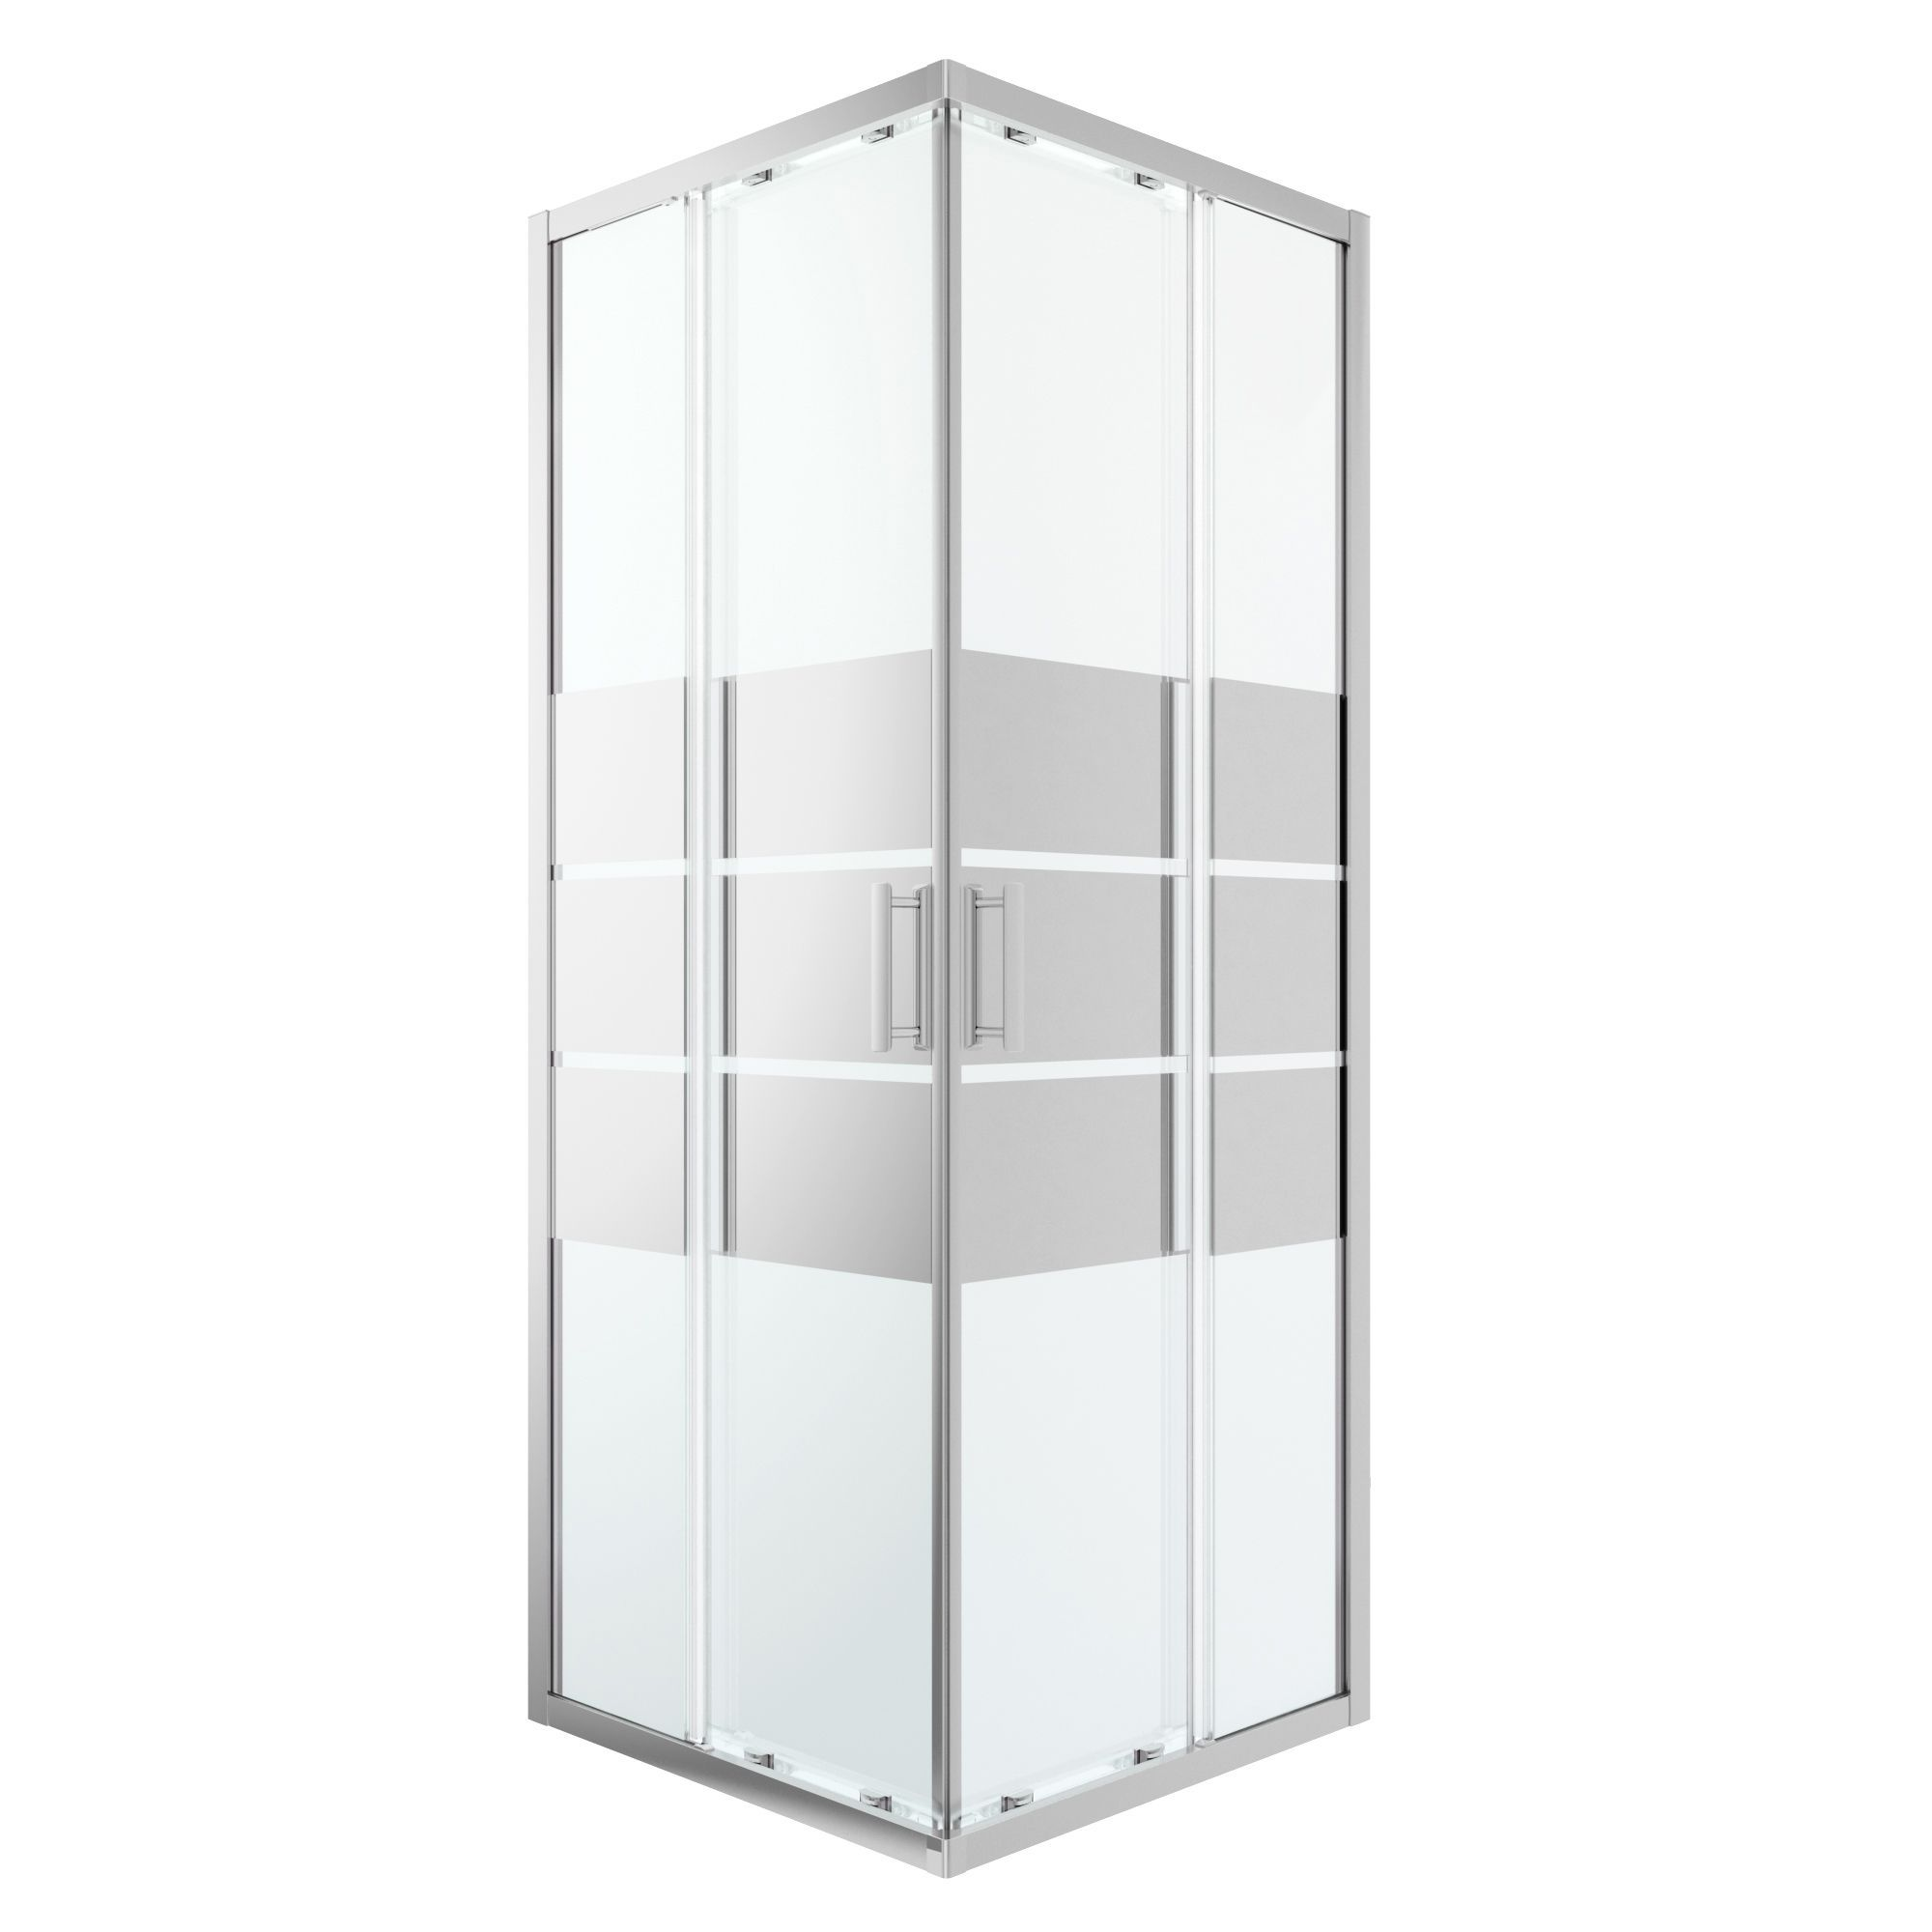 Goodhome Beloya Square Shower Enclosure With Corner Entry Double Sliding Door Mirror Glass W 760mm D 760mm Departments Diy At B Q